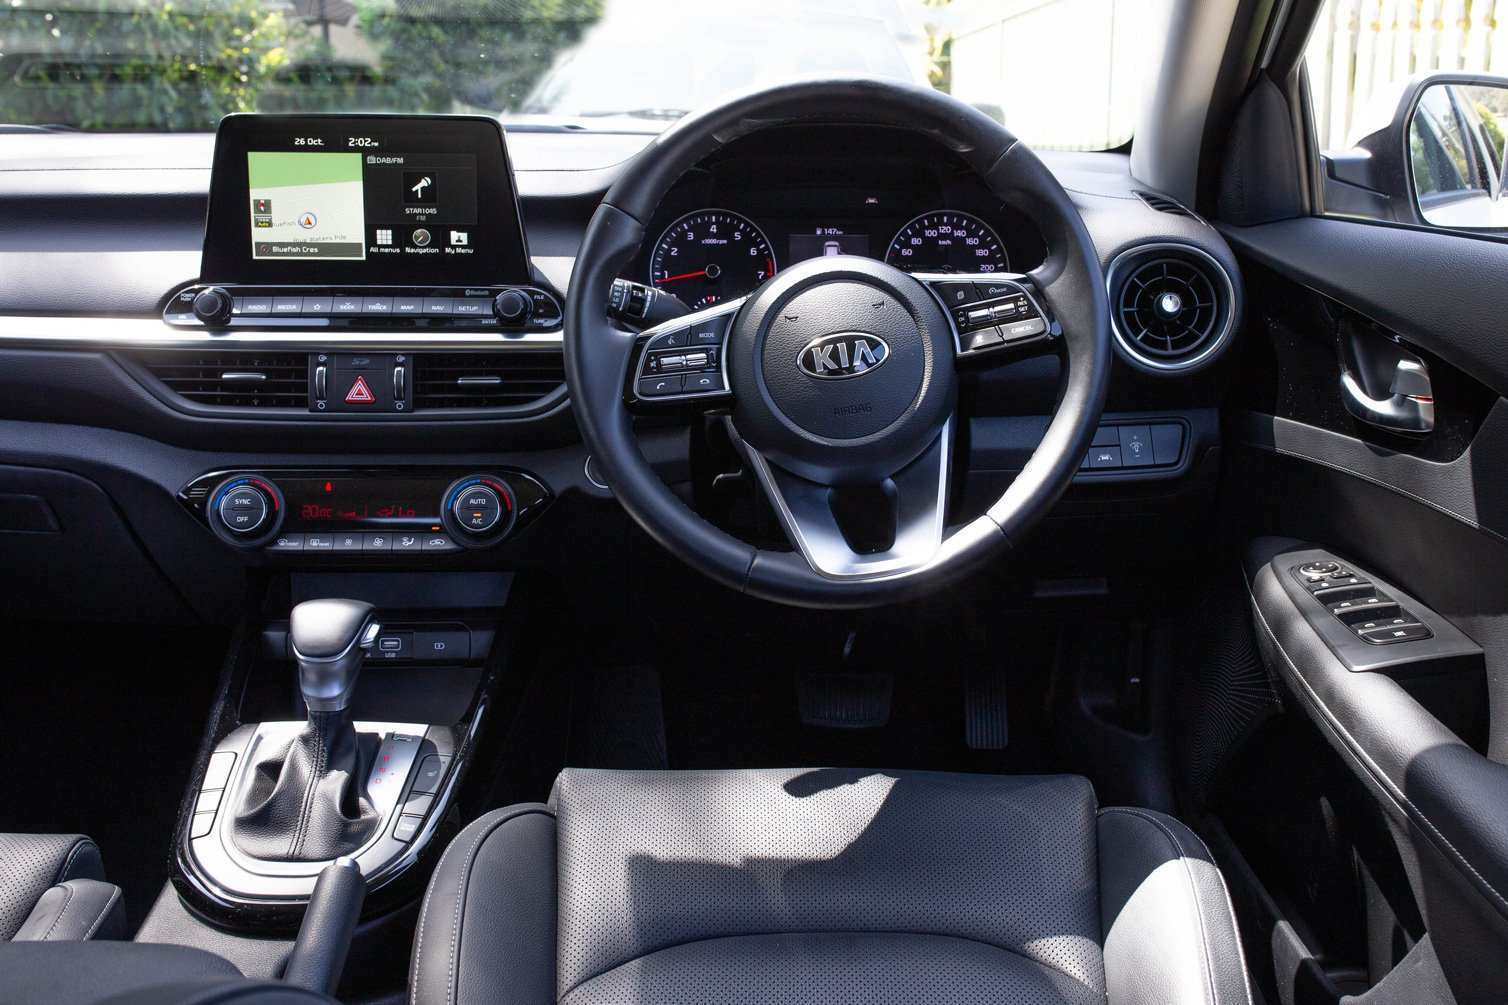 40 Best Kia Cerato 2019 Interior Wallpaper